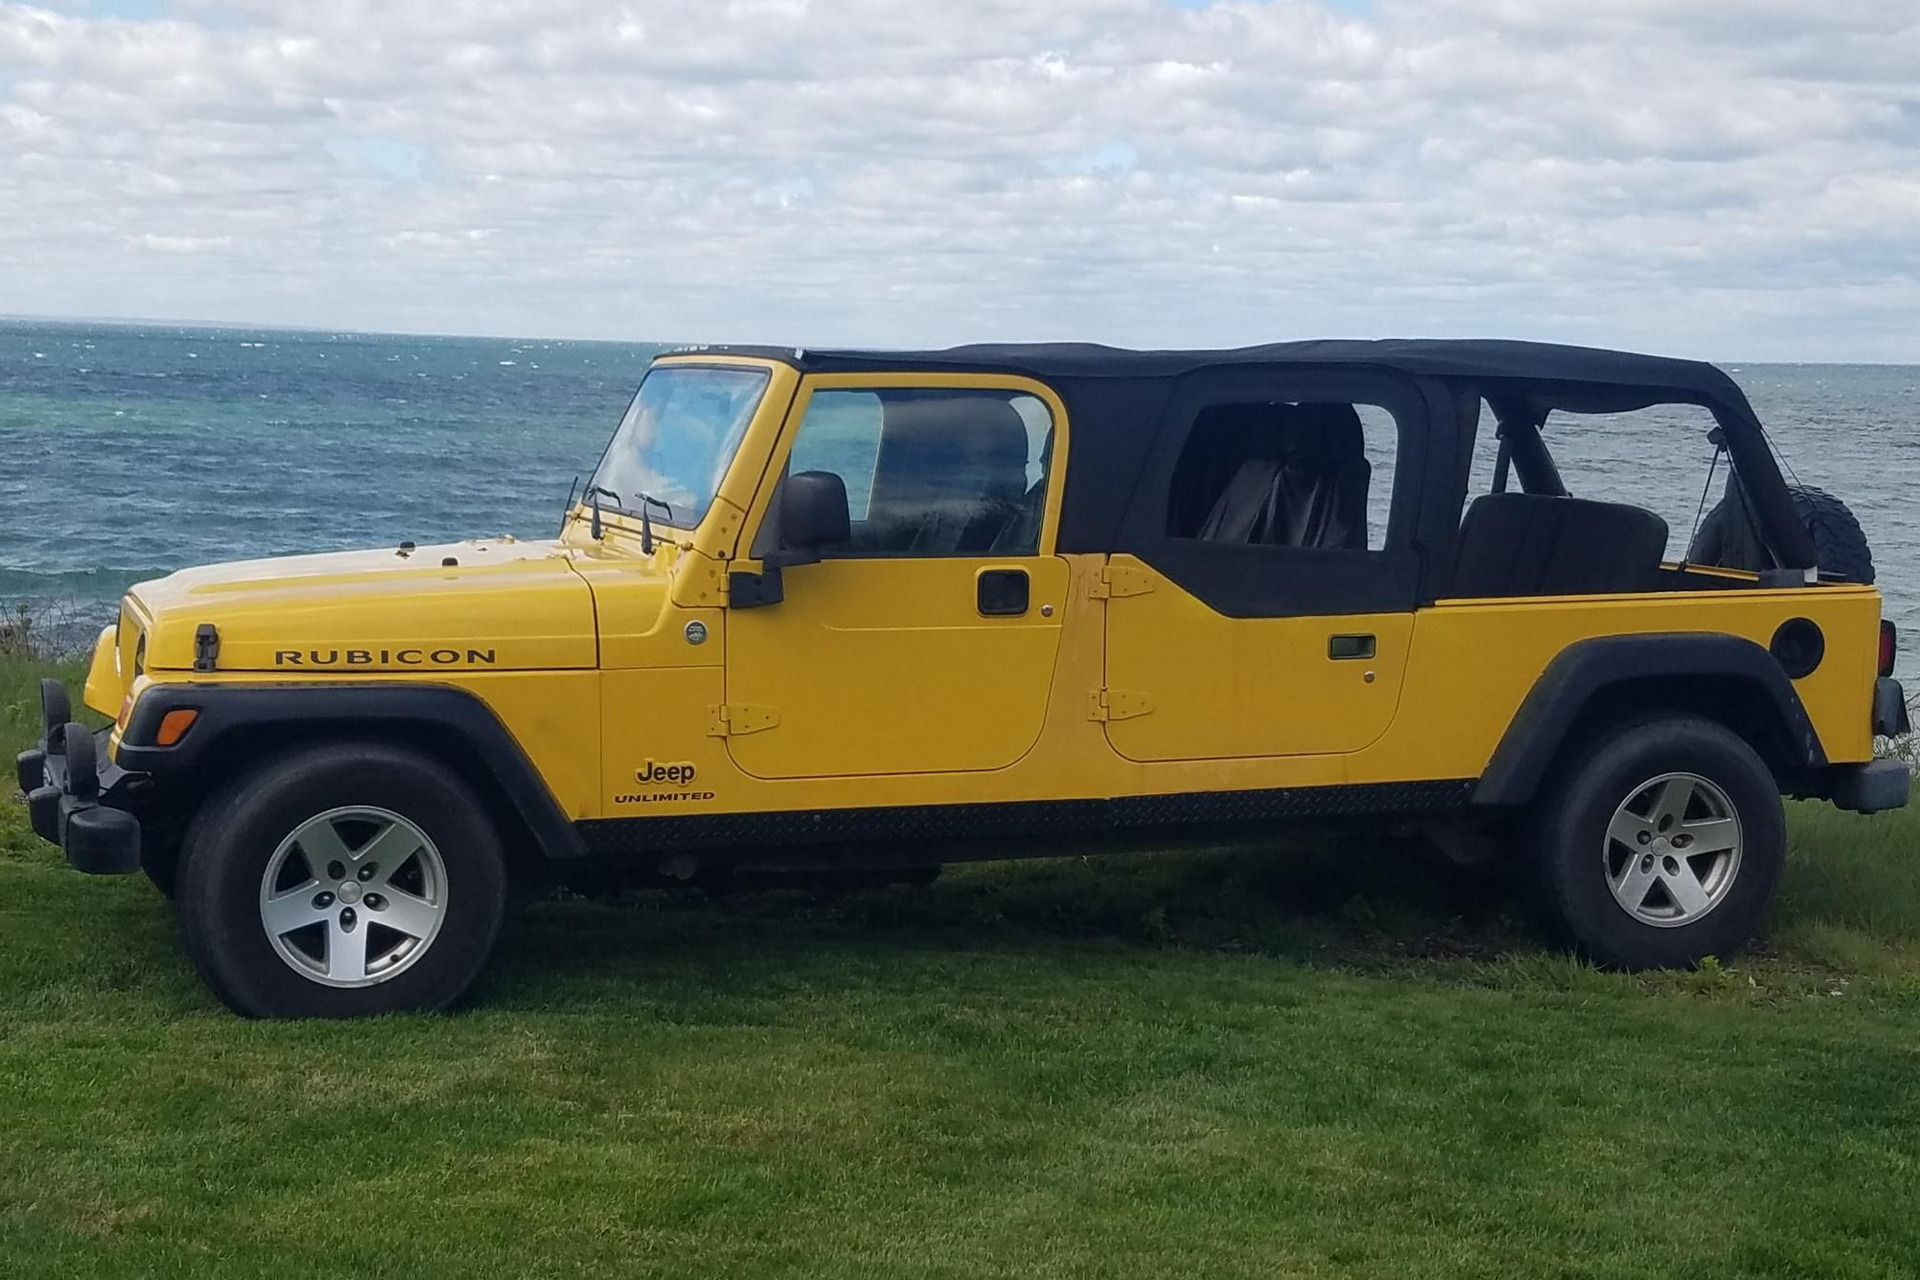 As you probably know, the Jeep Wrangler had been strictly a two-door car until 2007 (watch the video for a 2006MY example). One of the owners wanted more doors and seats, so he went ahead and added them, tuning the SUV into a stretch limo of sorts.